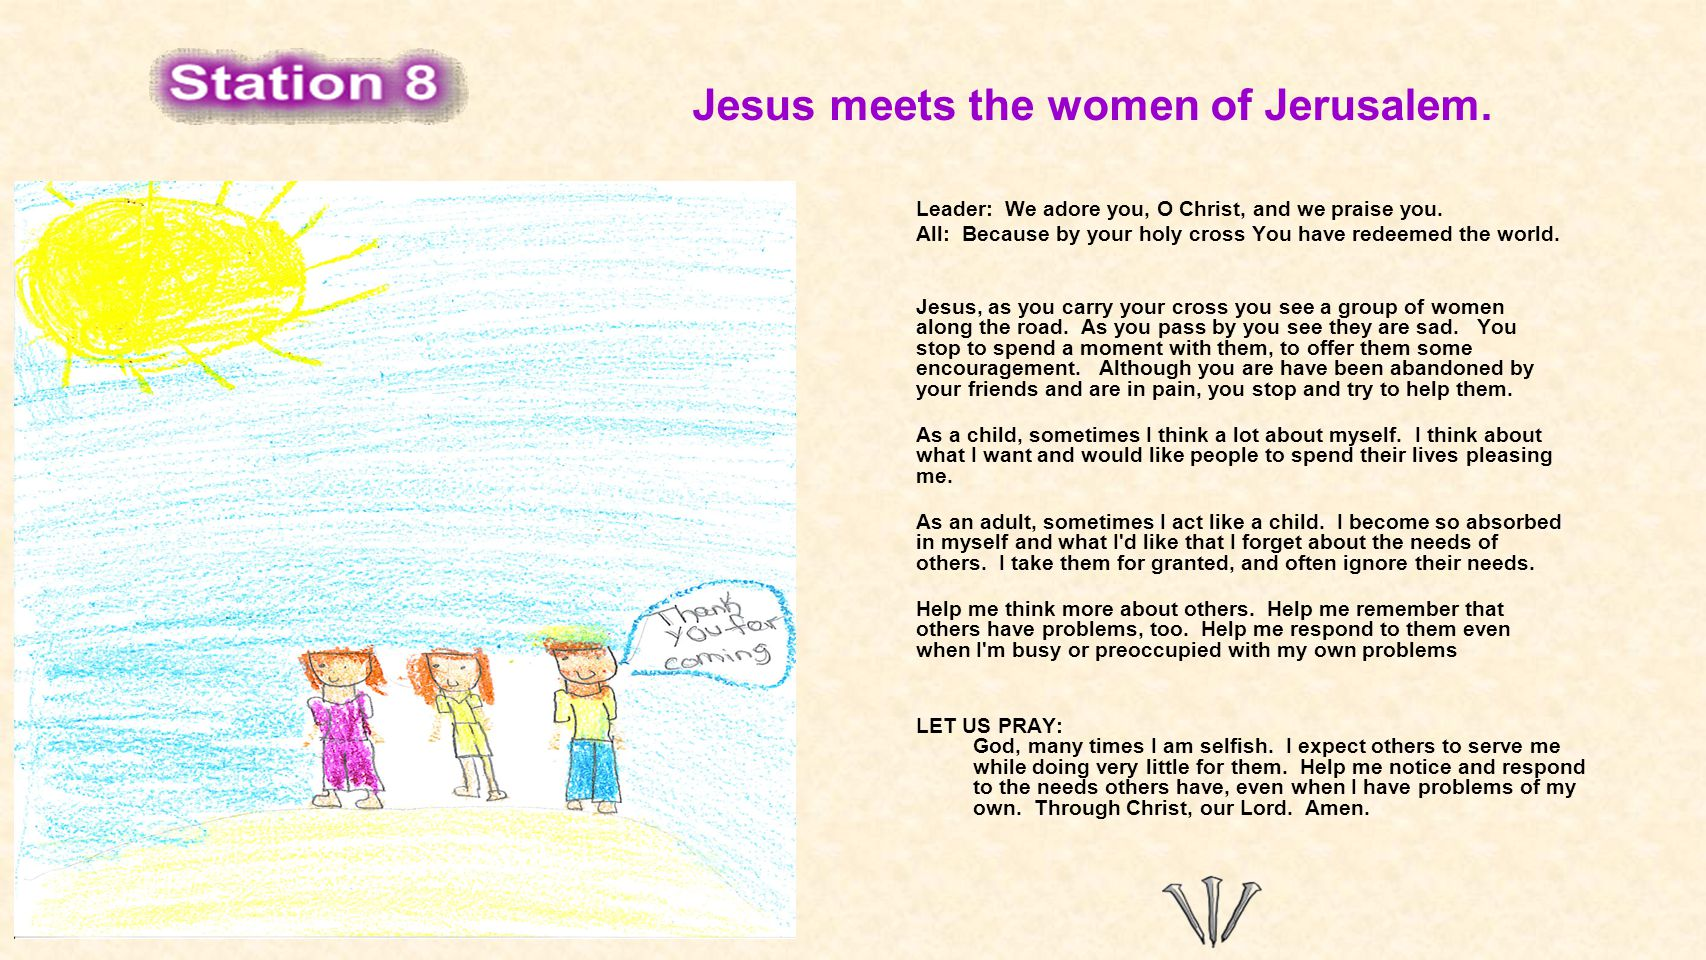 Jesus meets the women of Jerusalem. Leader: We adore you, O Christ, and we praise you.